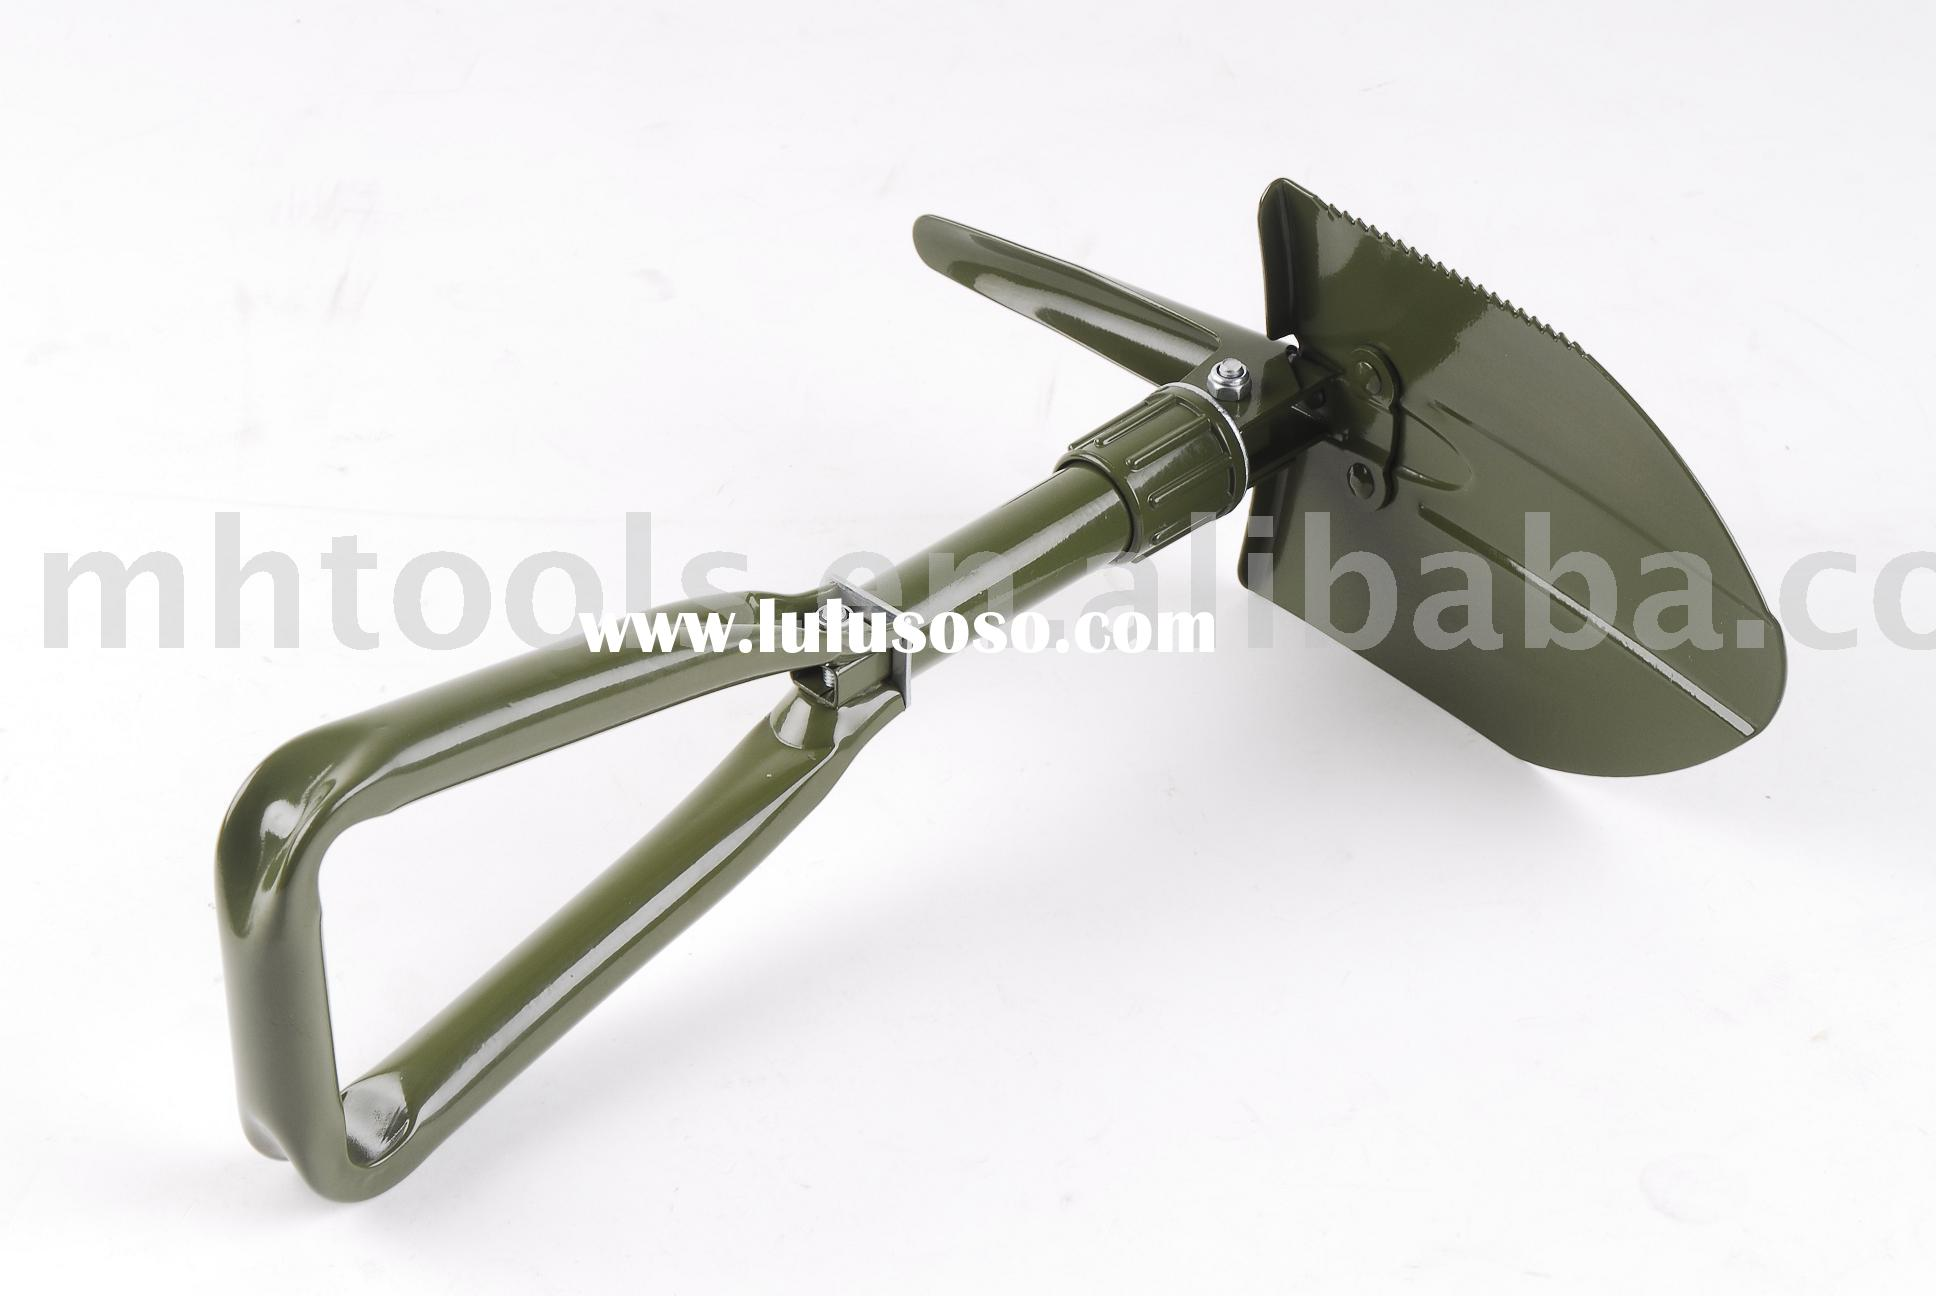 Military shovel,army supply, Folding Spade,Camping ( ),outdoor tools,gardening